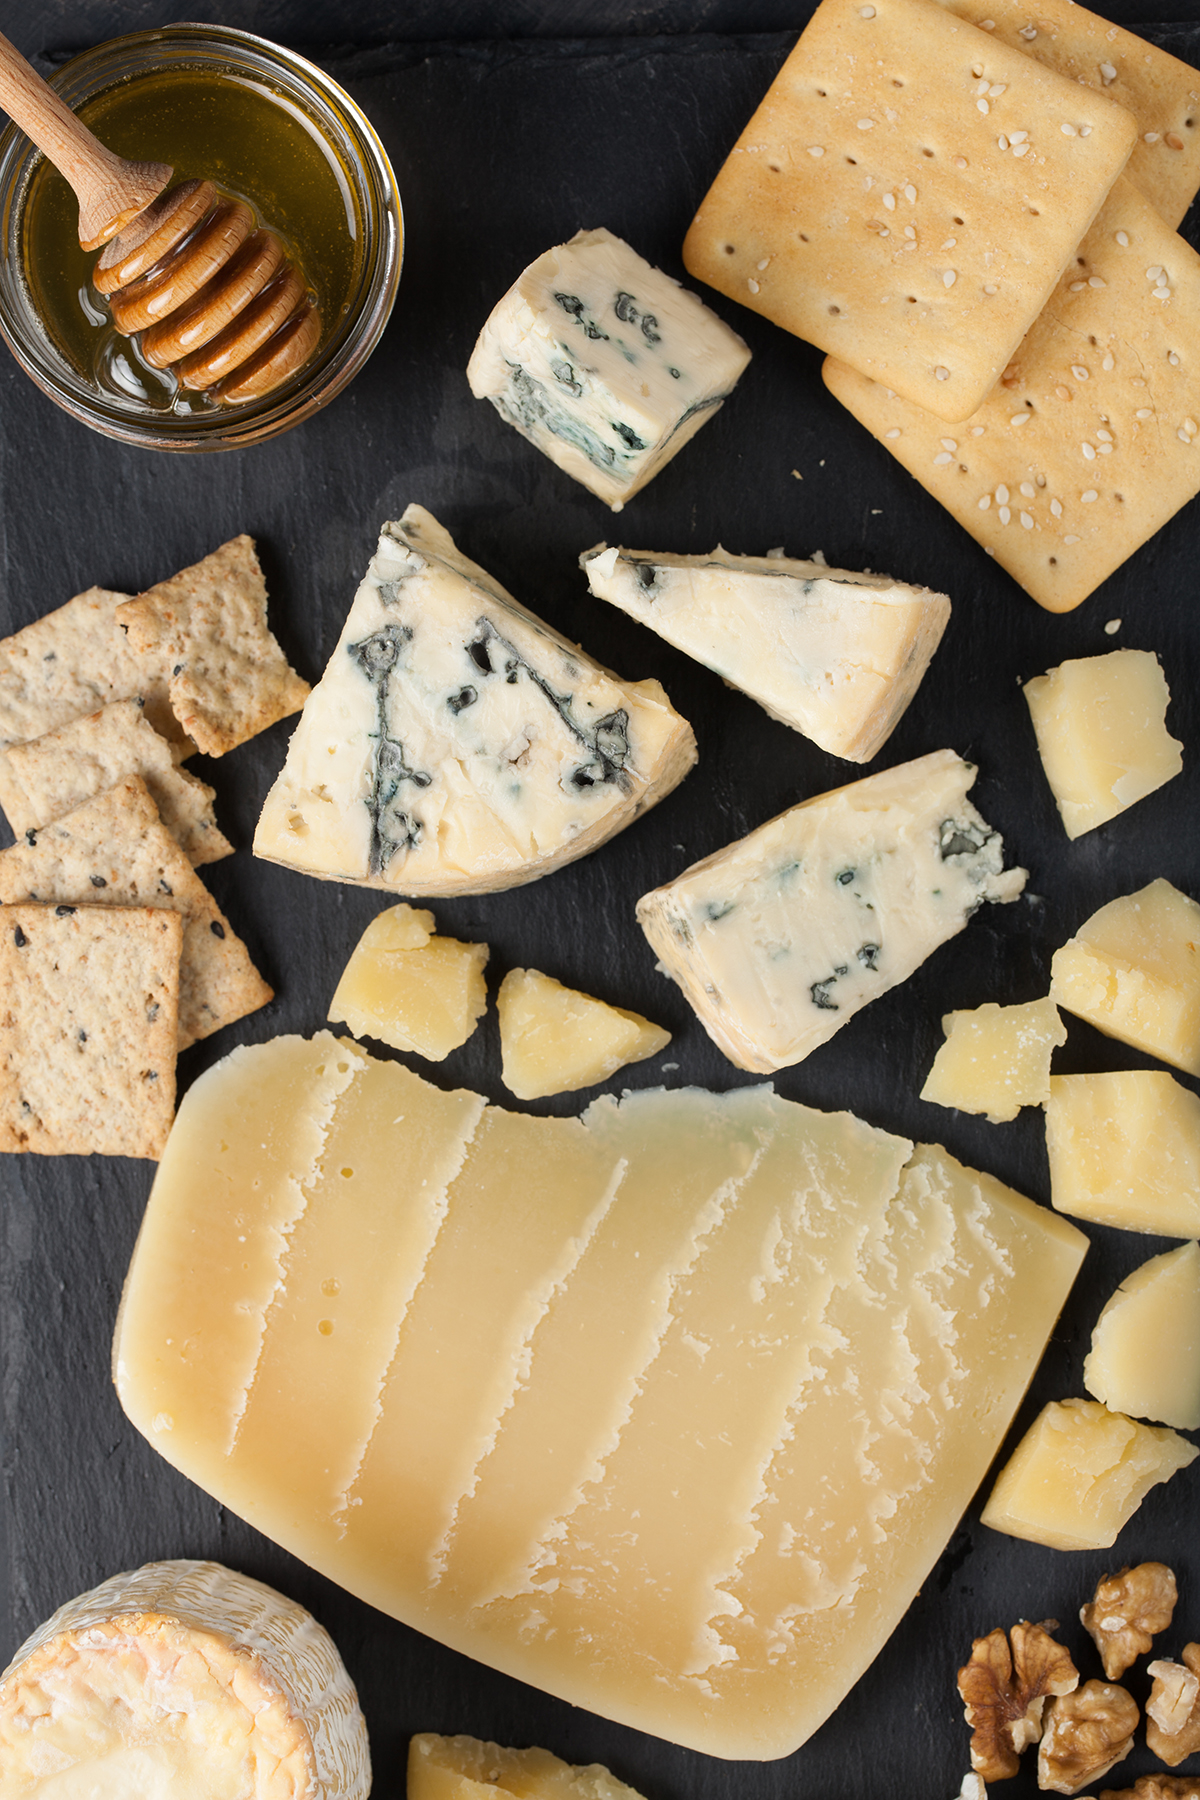 Slate board with cheese, honey, nuts, crackers